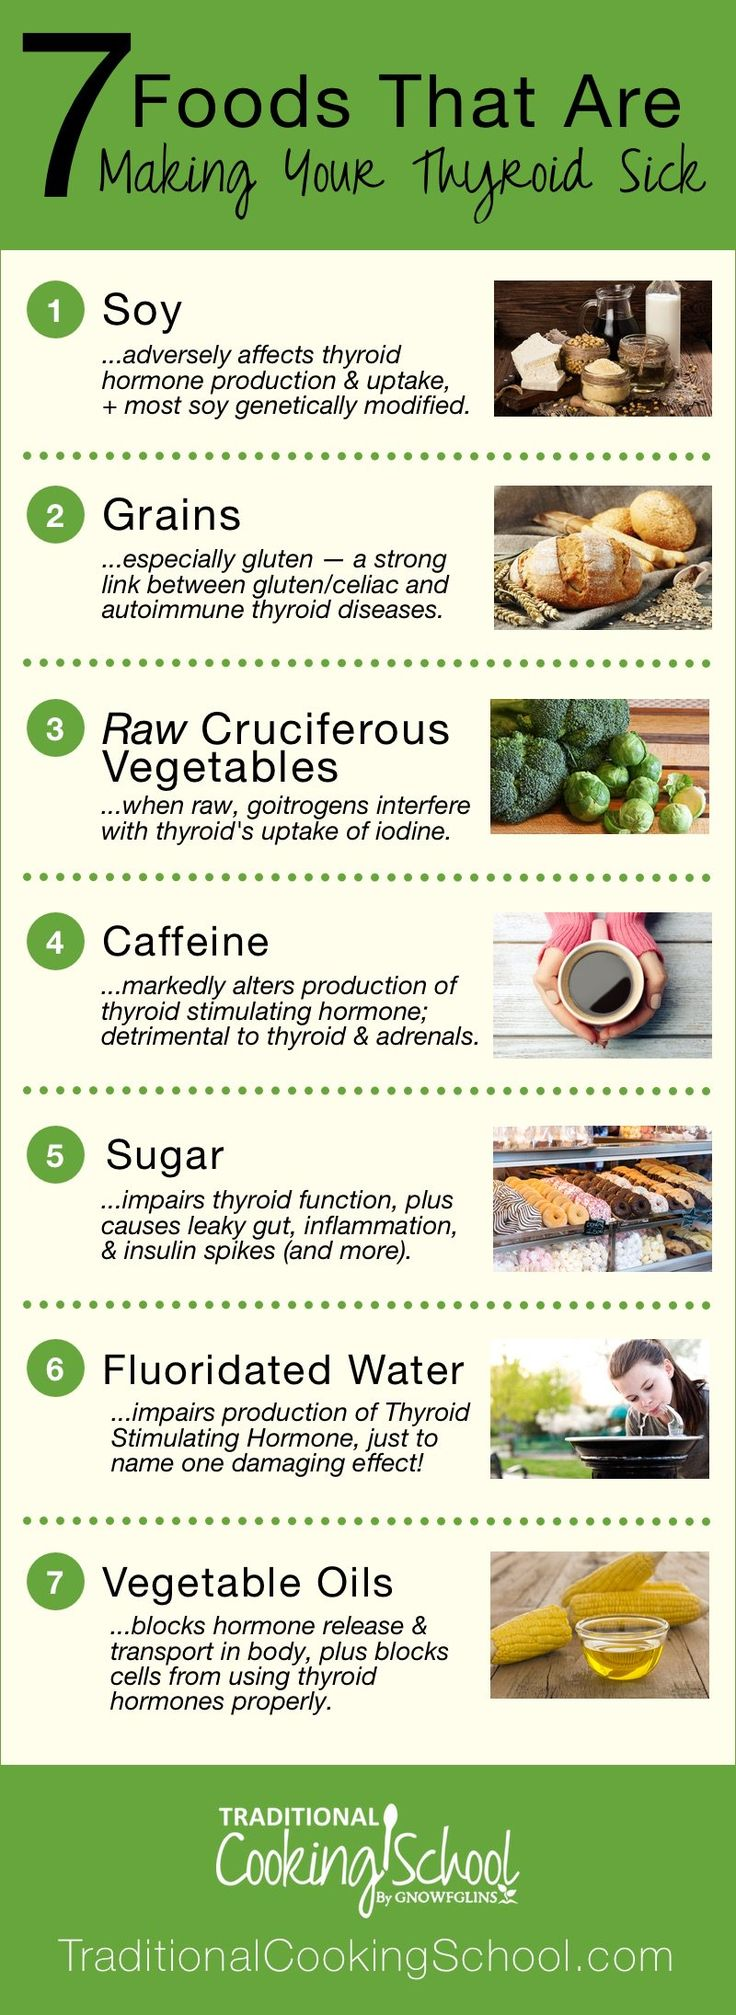 7 Foods That Are Making Your Thyroid Sick